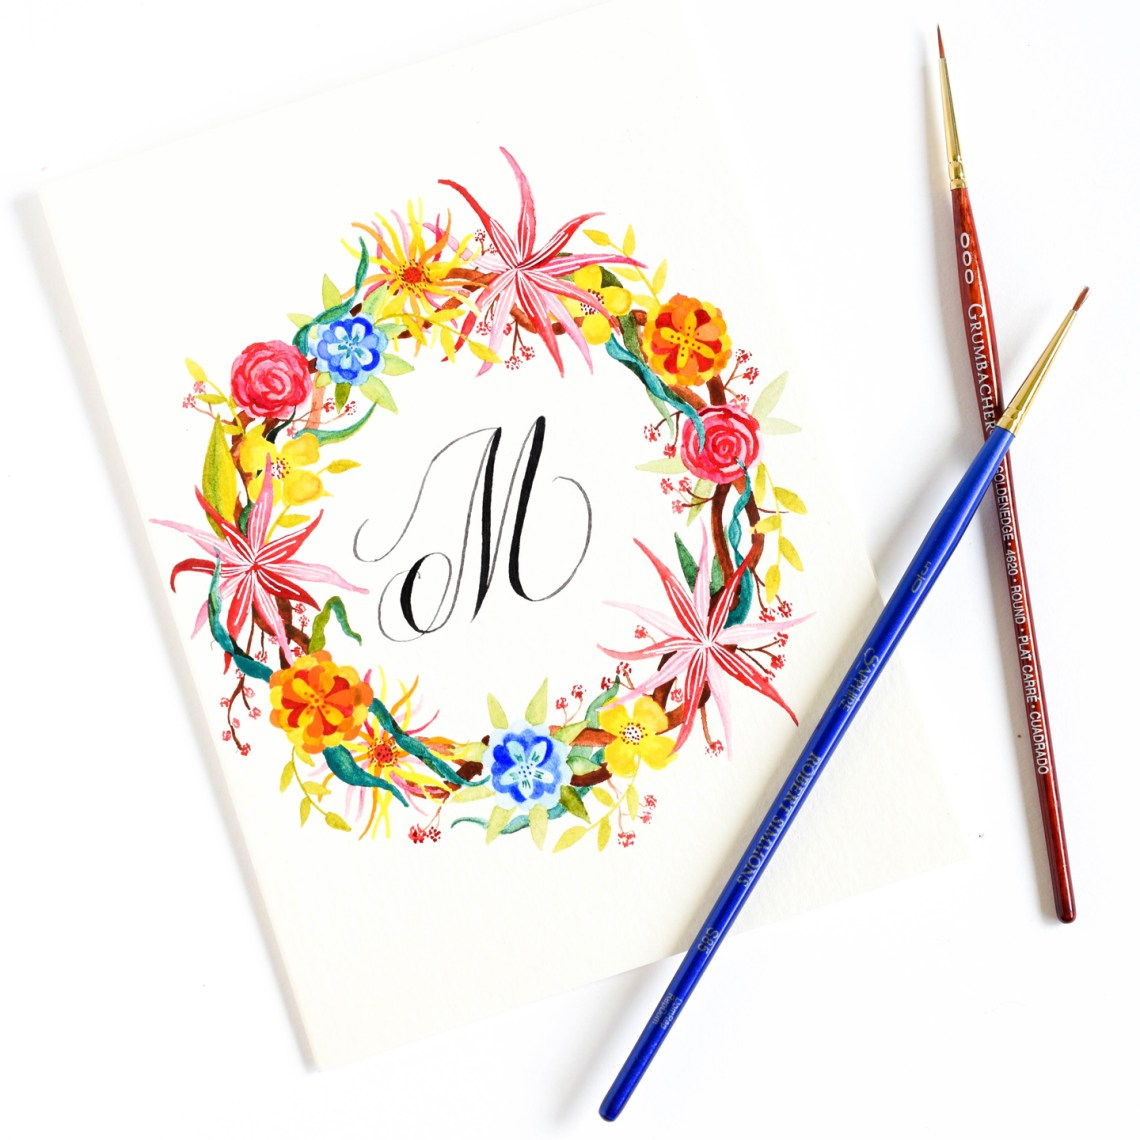 How to Stay Motivated When Learning Calligraphy | The Postman's Knock